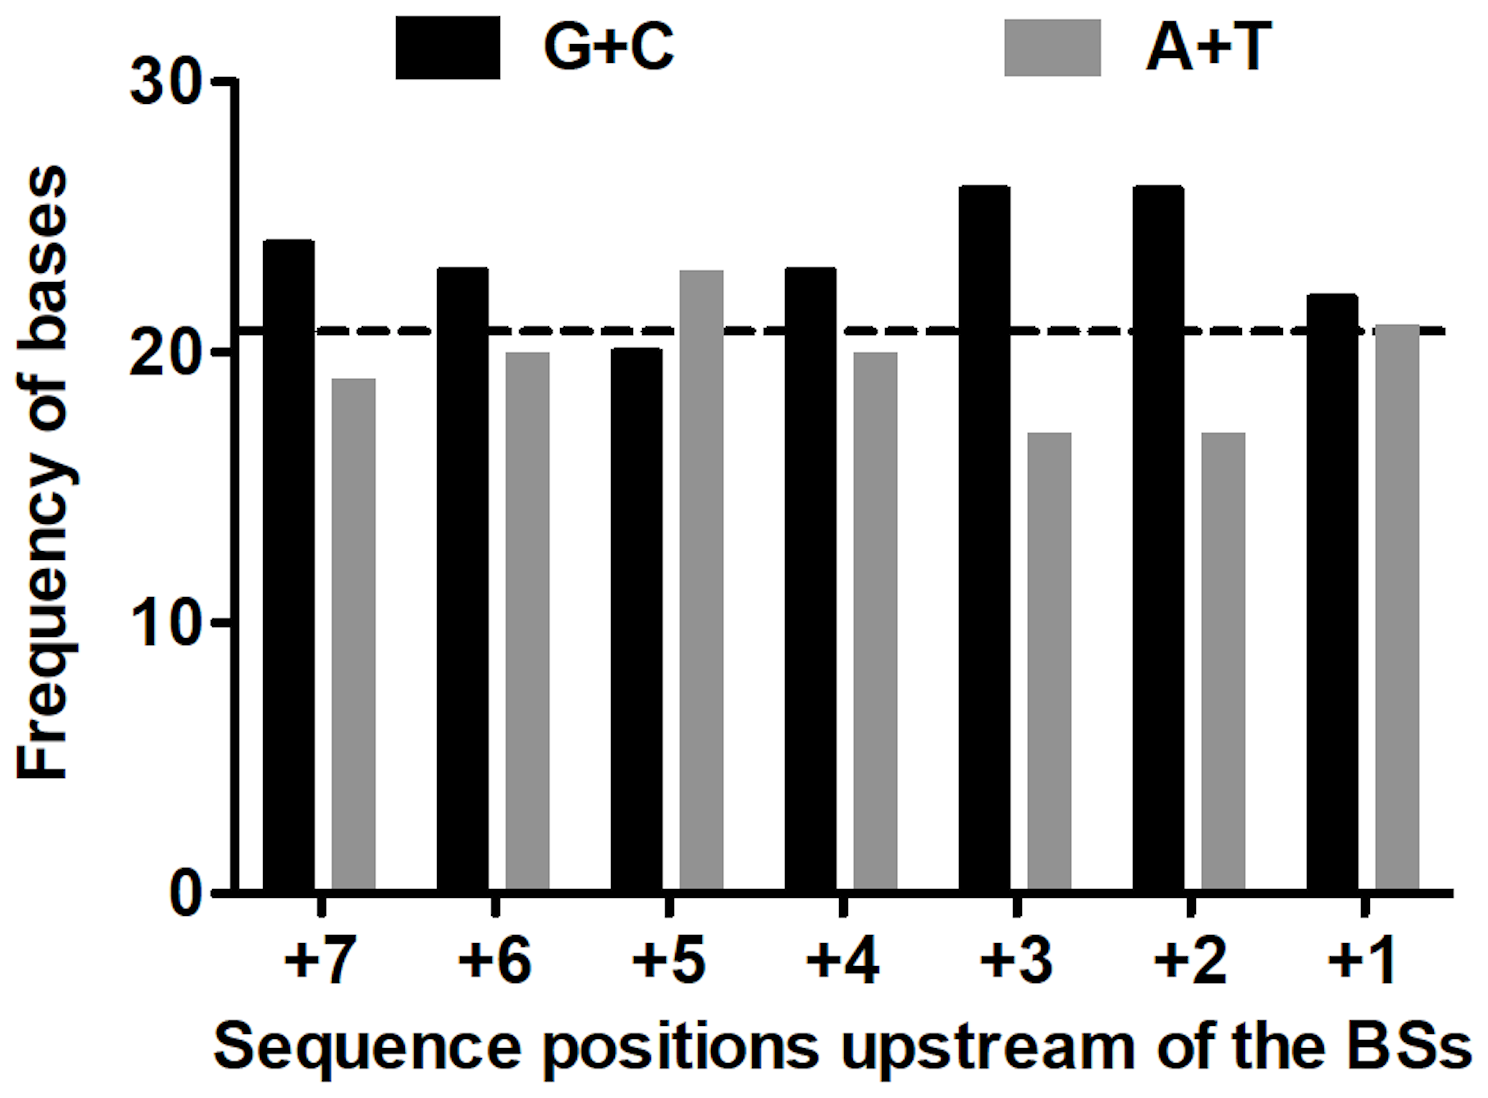 Frequencies of (G+C) and (A+T) upstream of base substitutions.